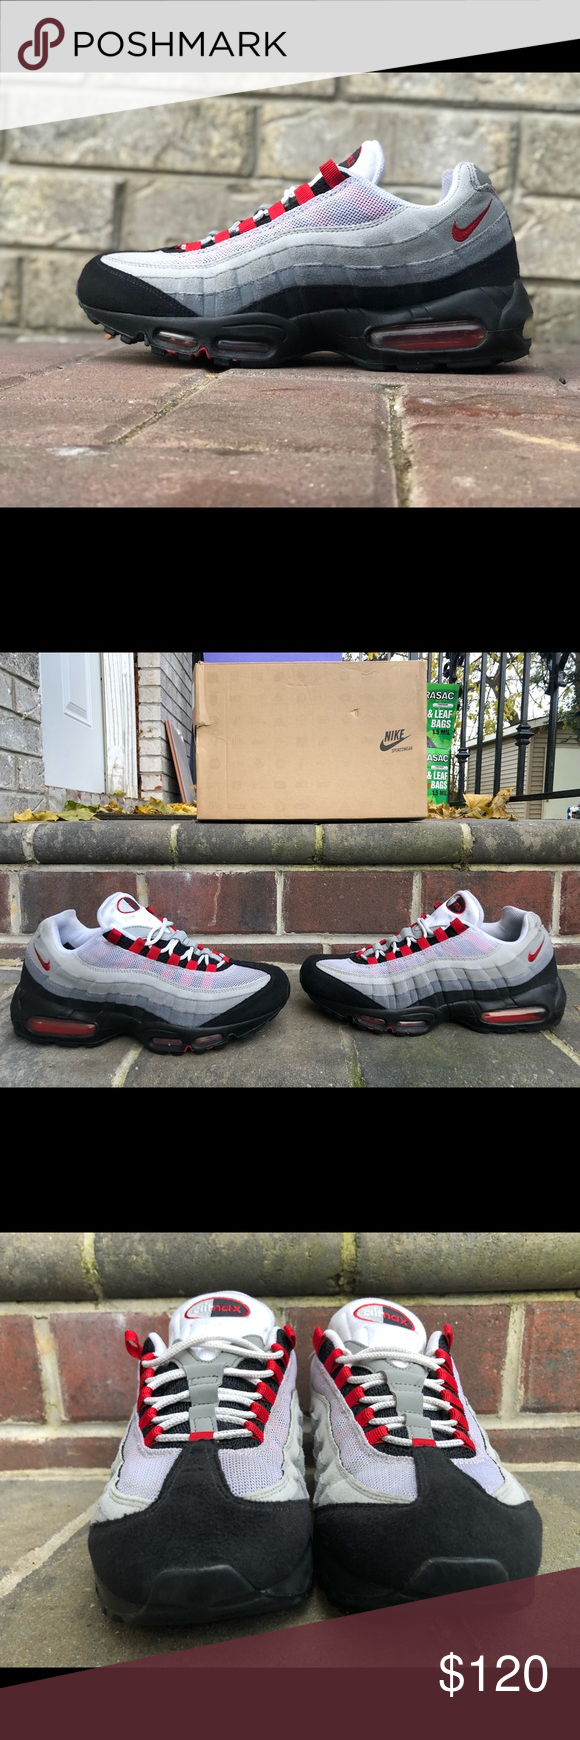 new arrival 280a7 aeb6b Nike air max 95 chili 2009 OG I am selling a pair of Nike ...